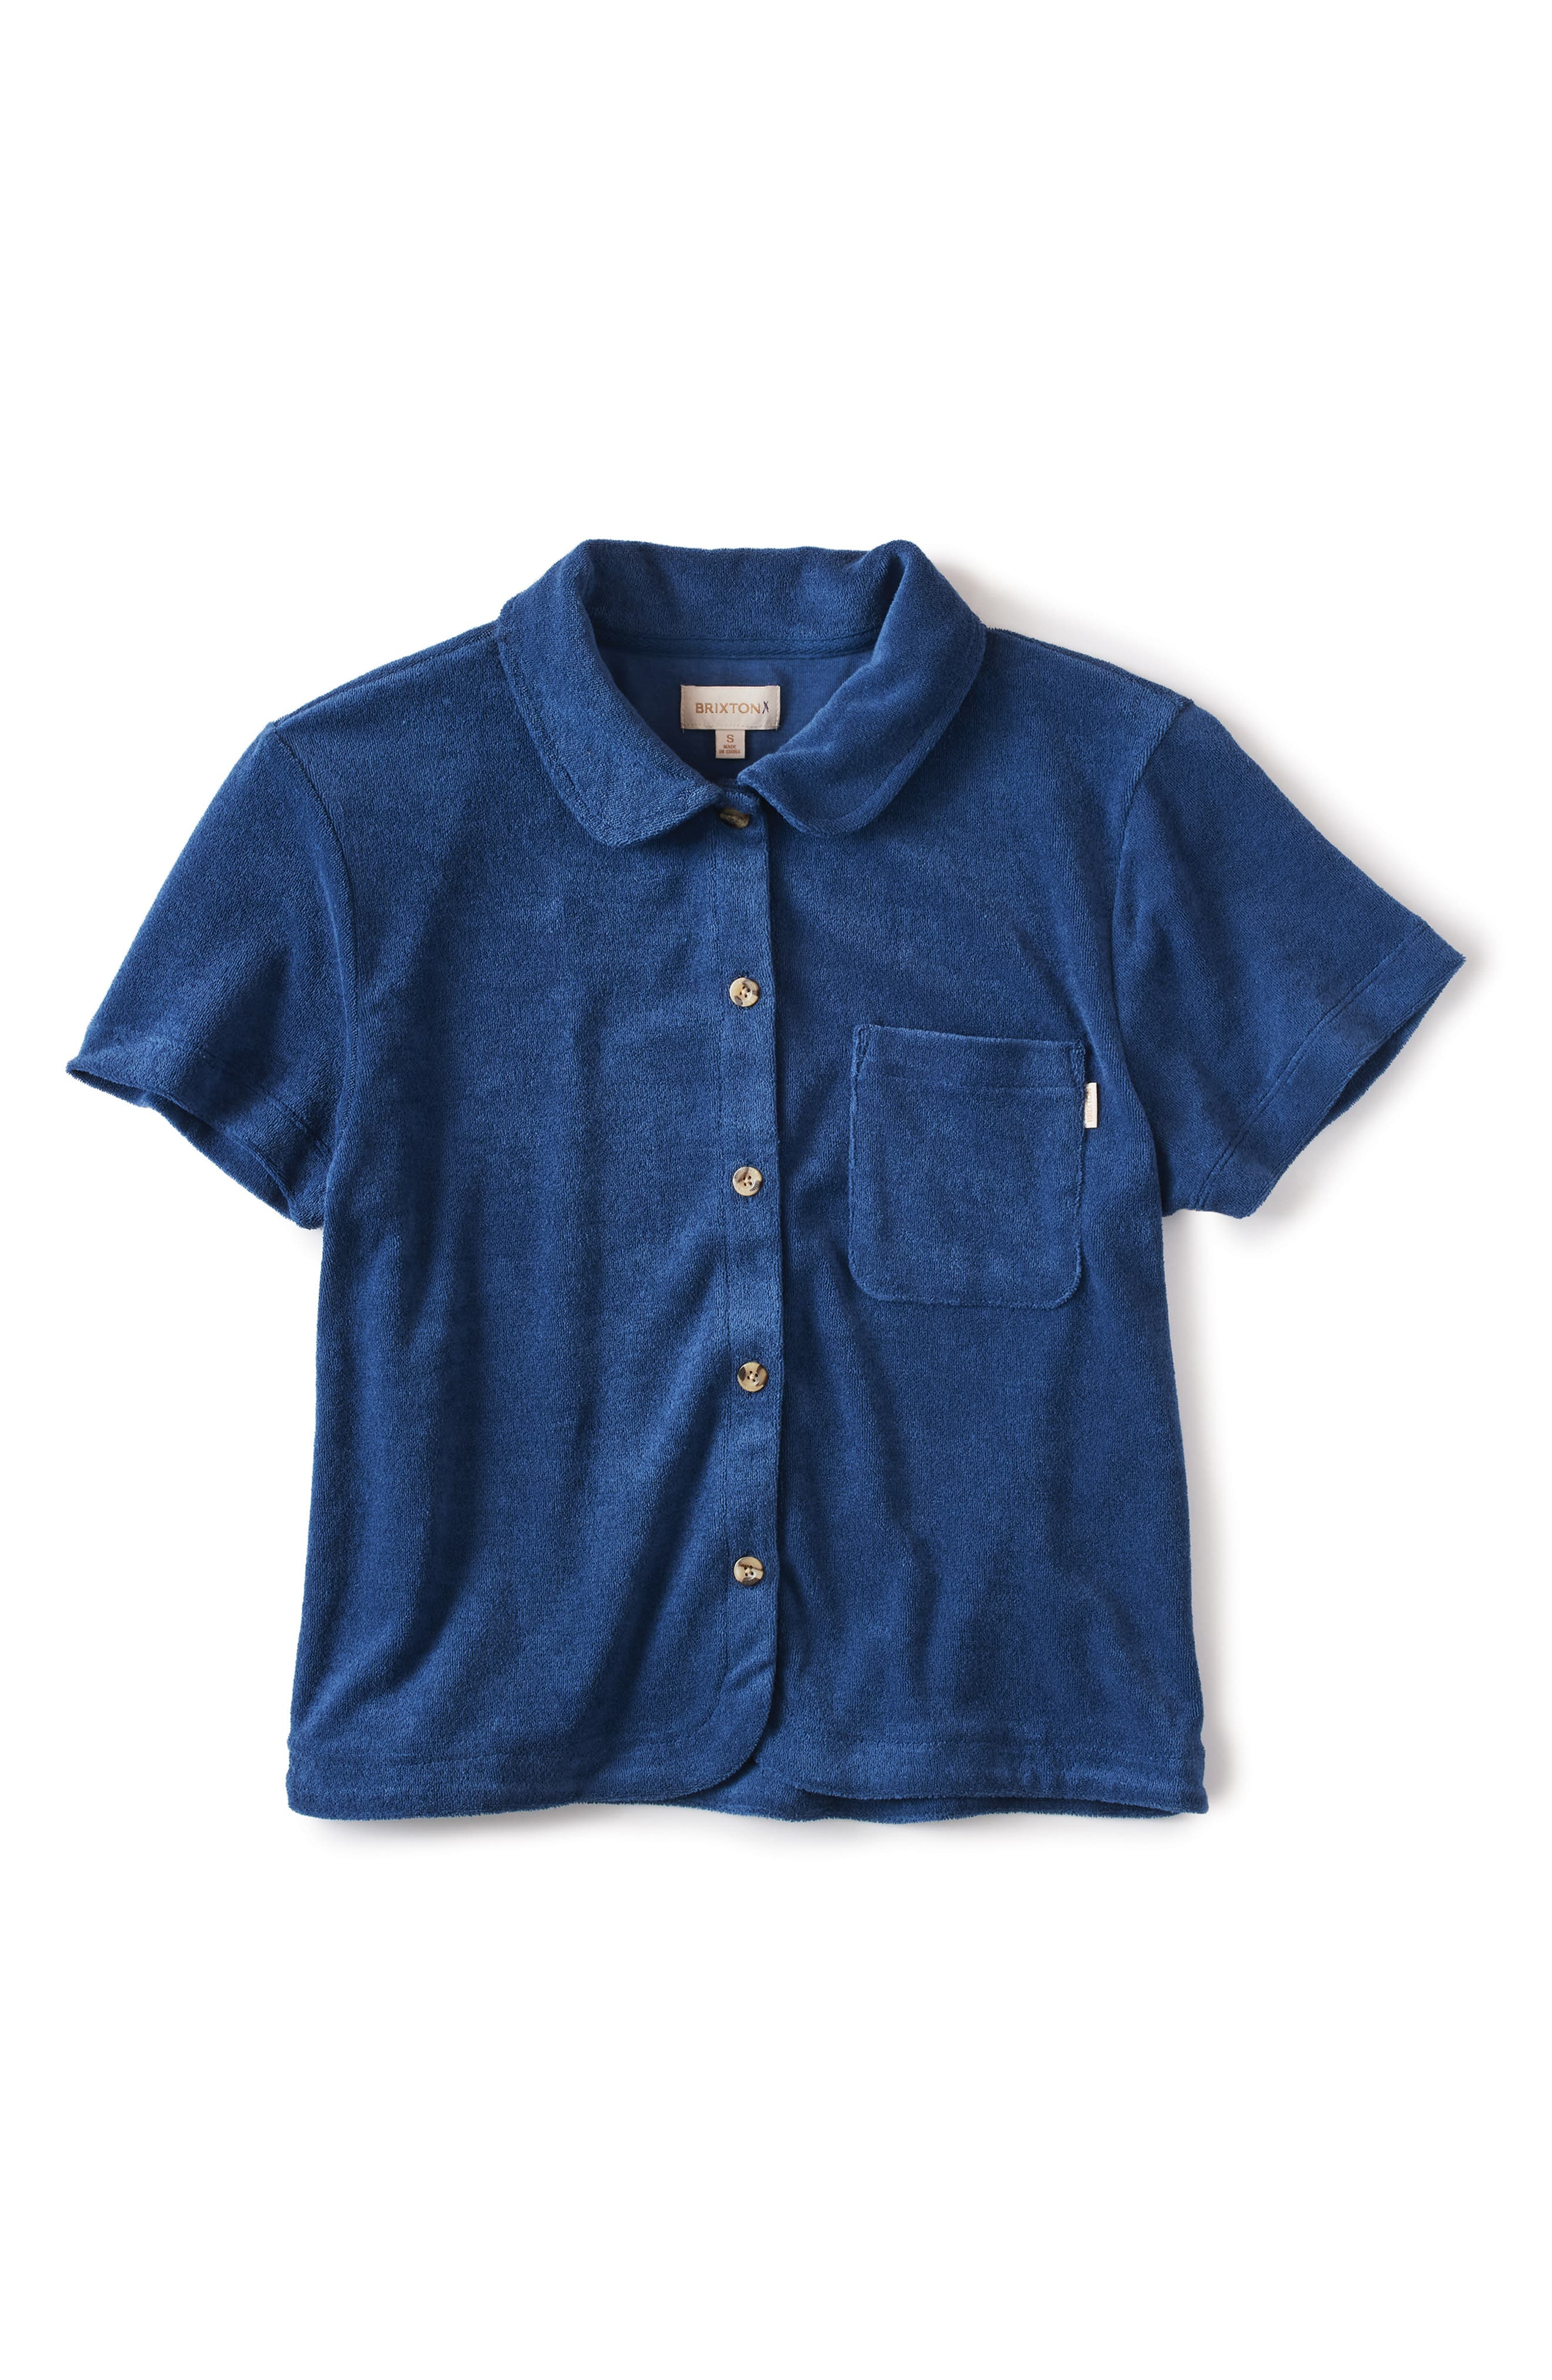 Marquee Terry Cloth Button-Up Shirt